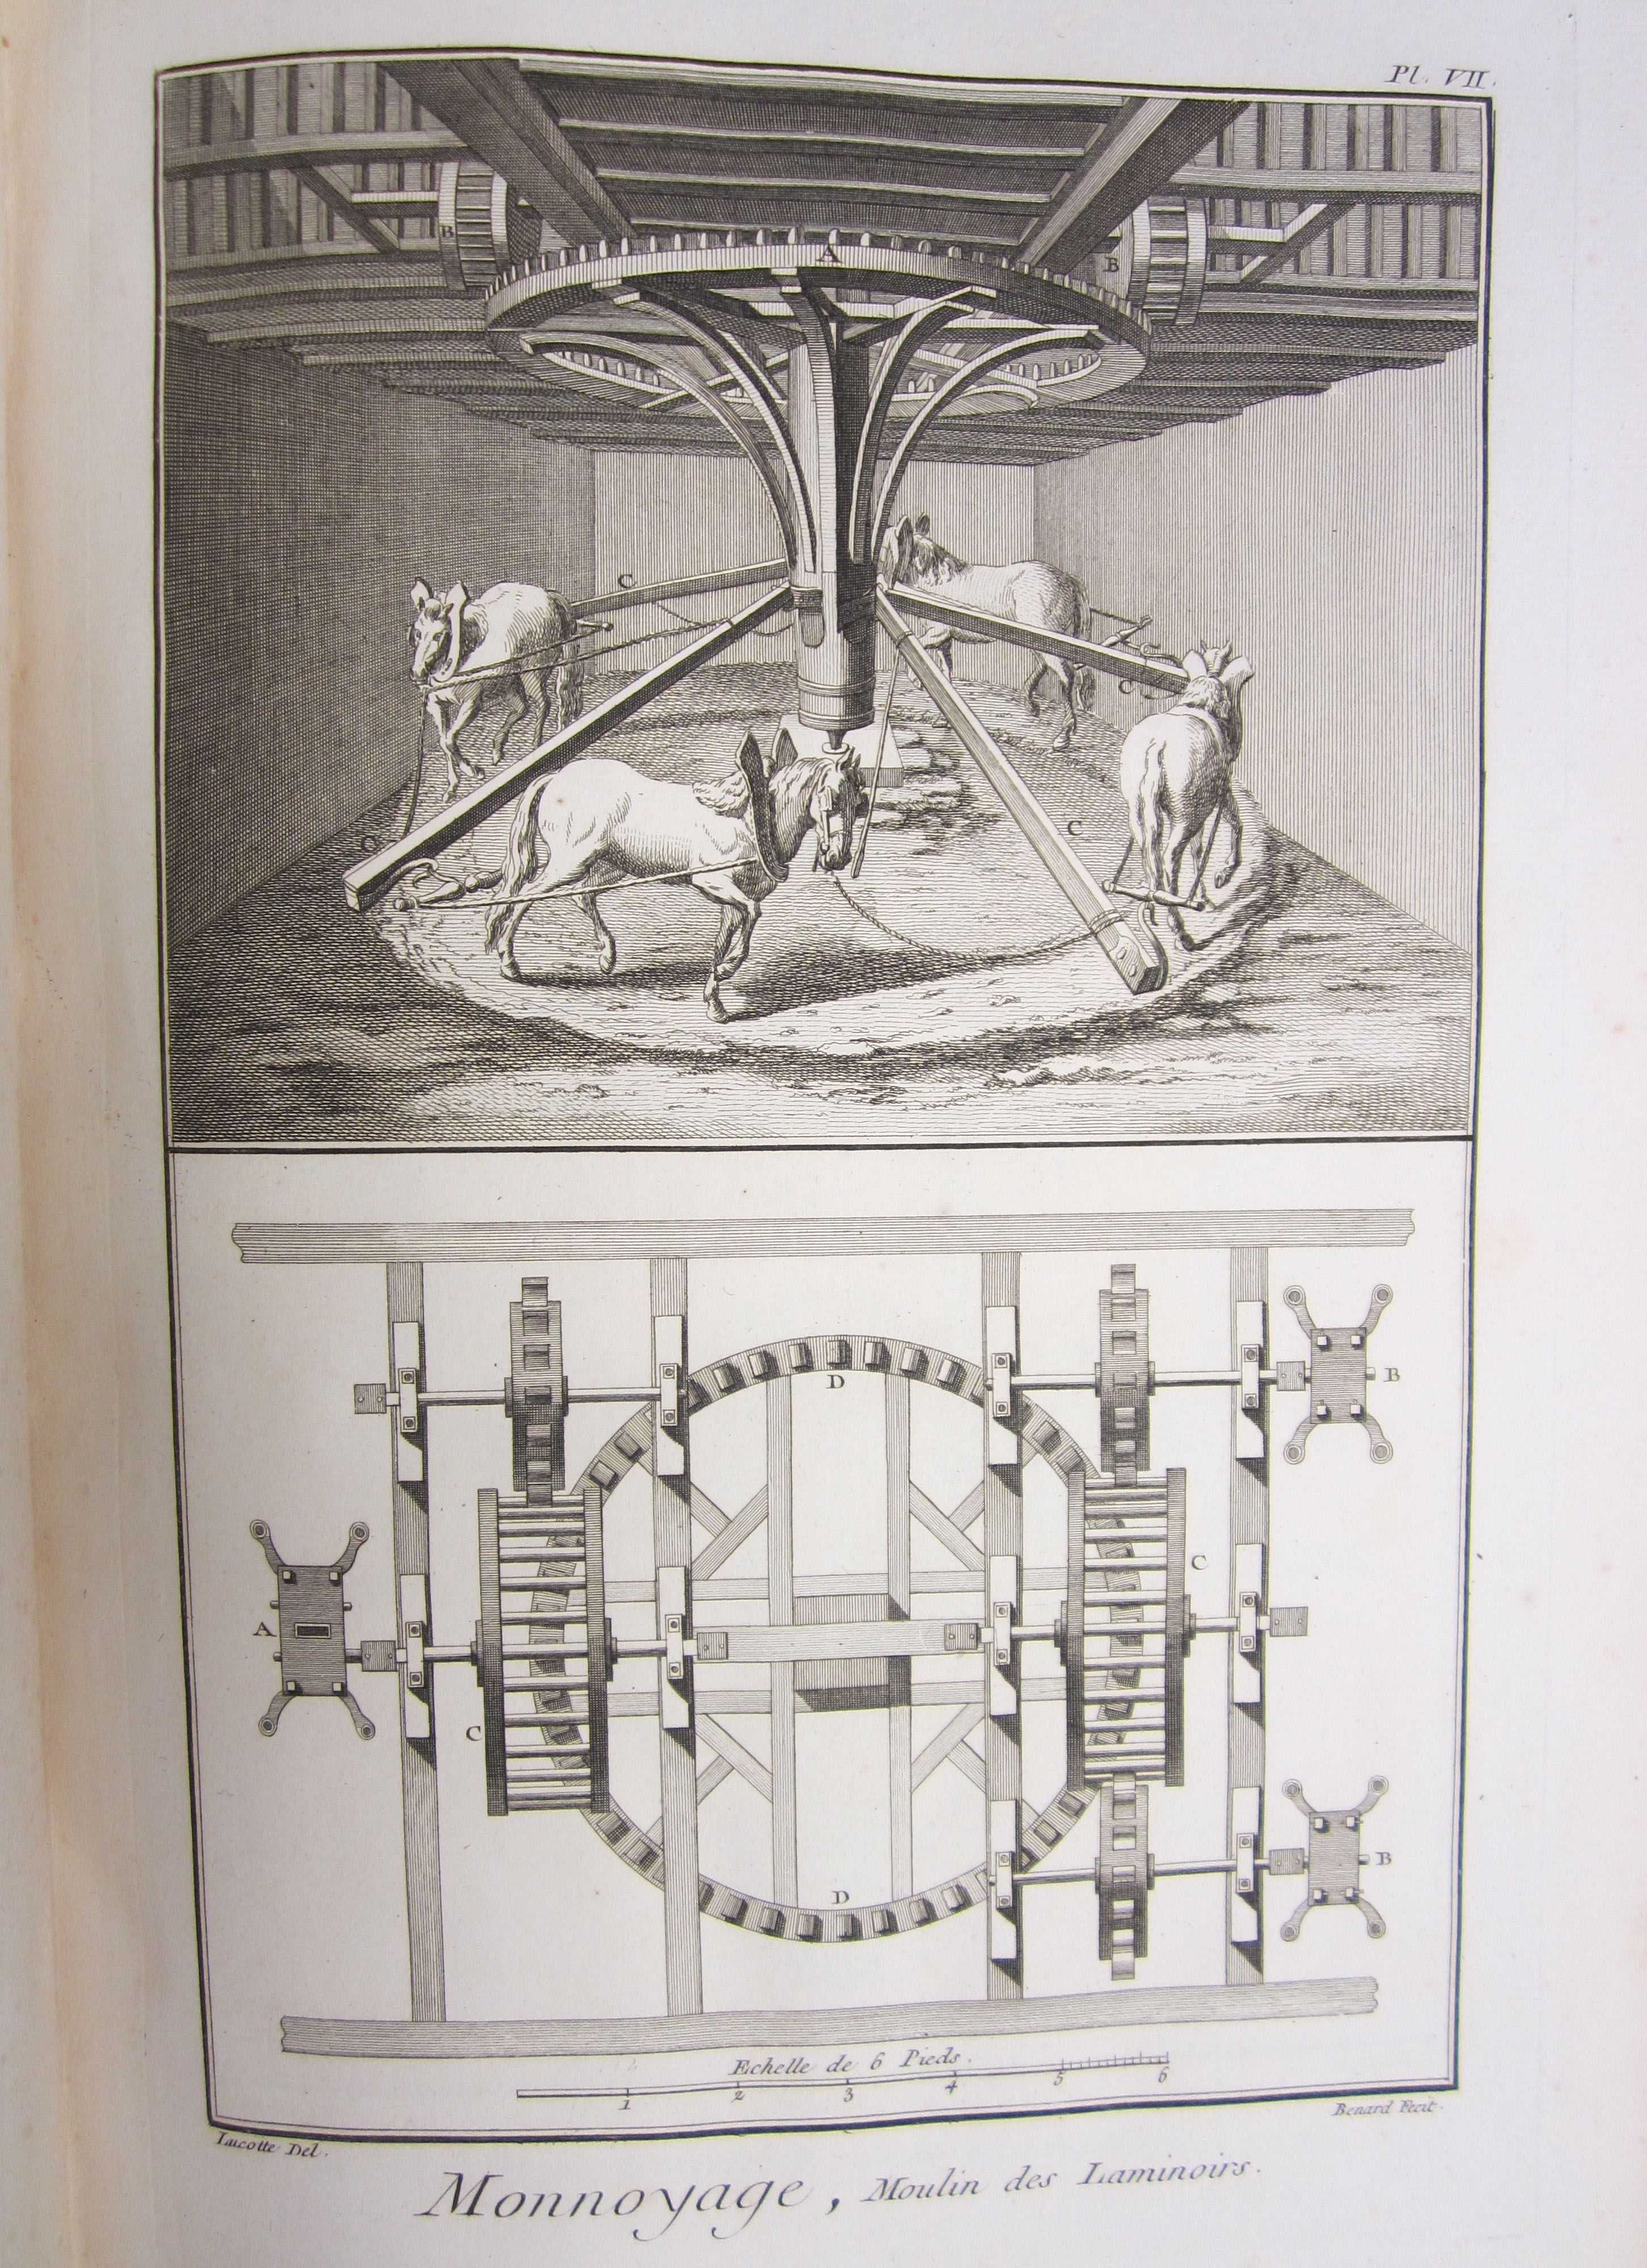 Engraving from Encyclopédie; ou Díctionnaire raisonné des sciences, des arts et des métiers. (Gordon 1751 .D542 t8. Gordon French Book Collection. Photograph by Donna Stapley.)